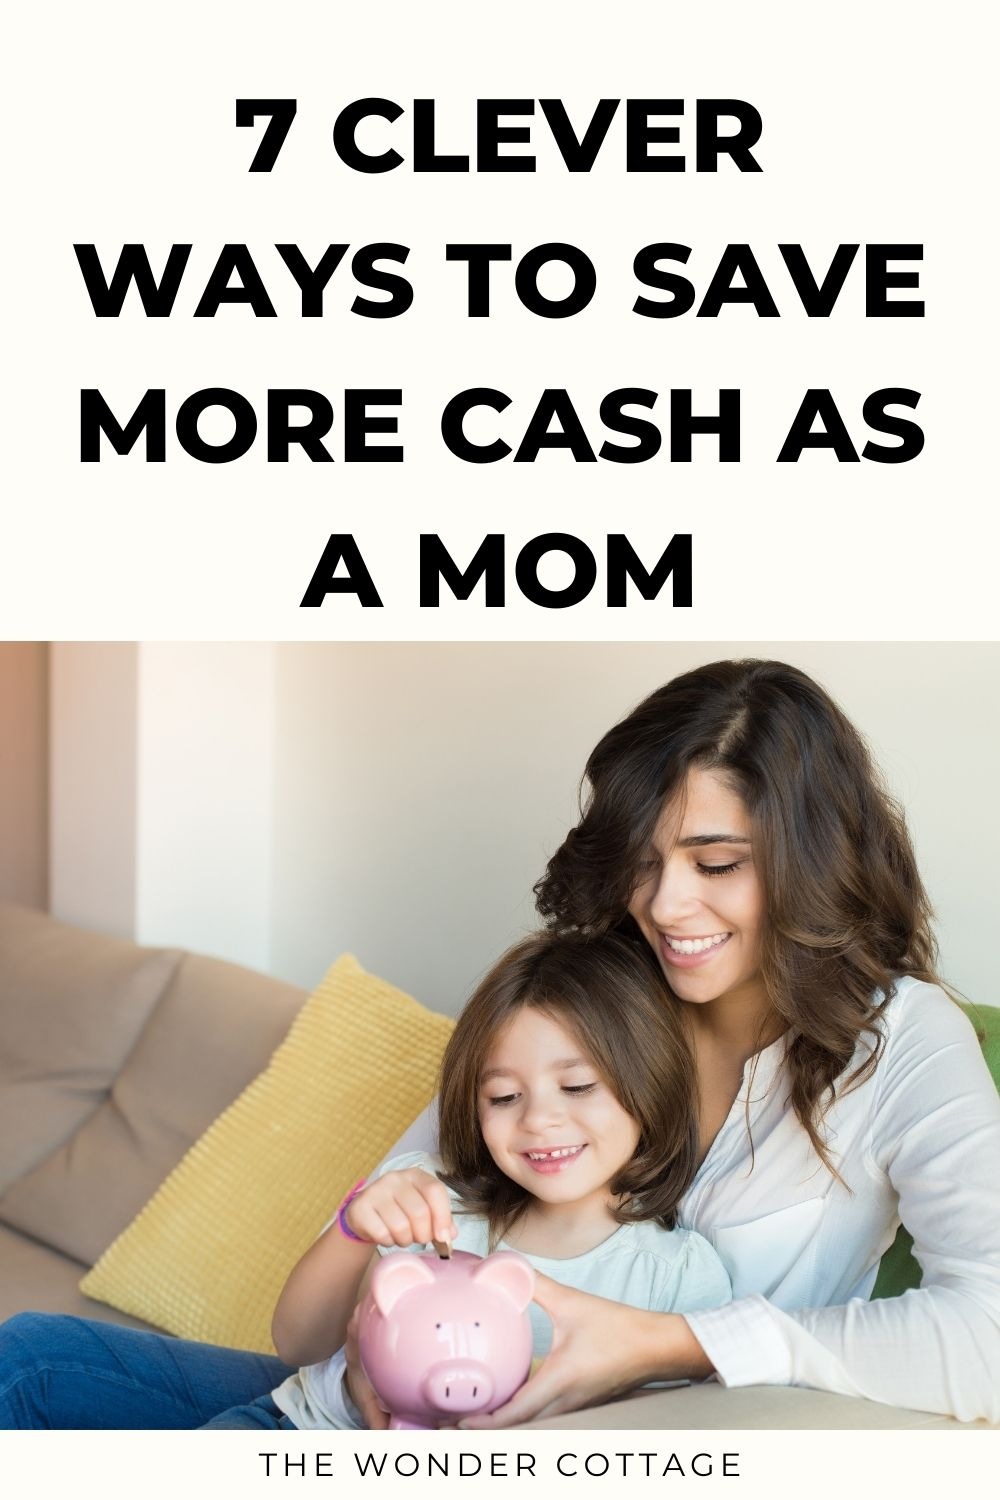 7 clever ways to save more cash as a mom